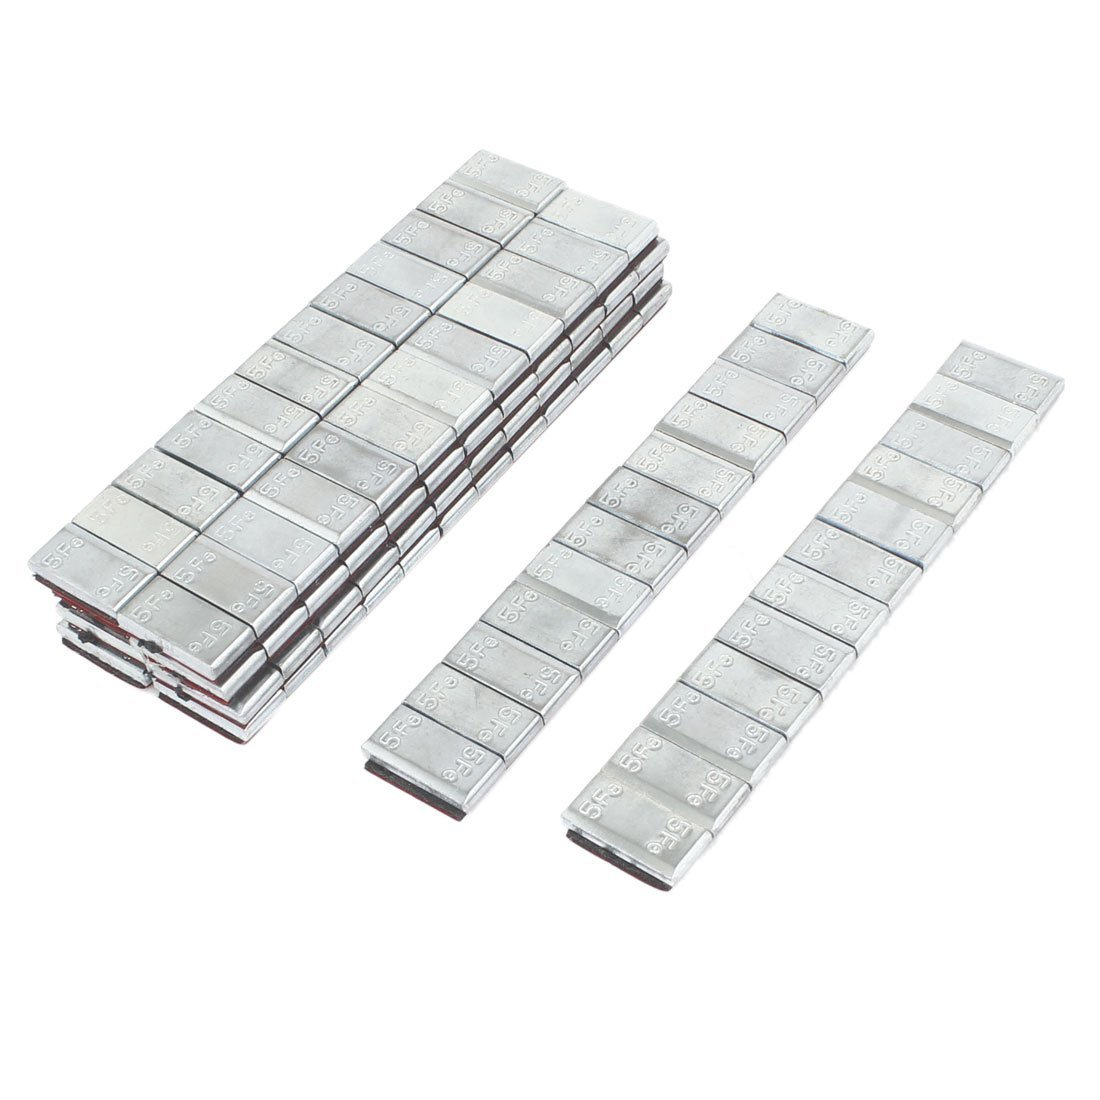 Wheel Balance Weight - TOOGOO(R) 10pcs Adhesive Back Metal Tire Wheel Balance Weight Strip for Car SPHAGT57381